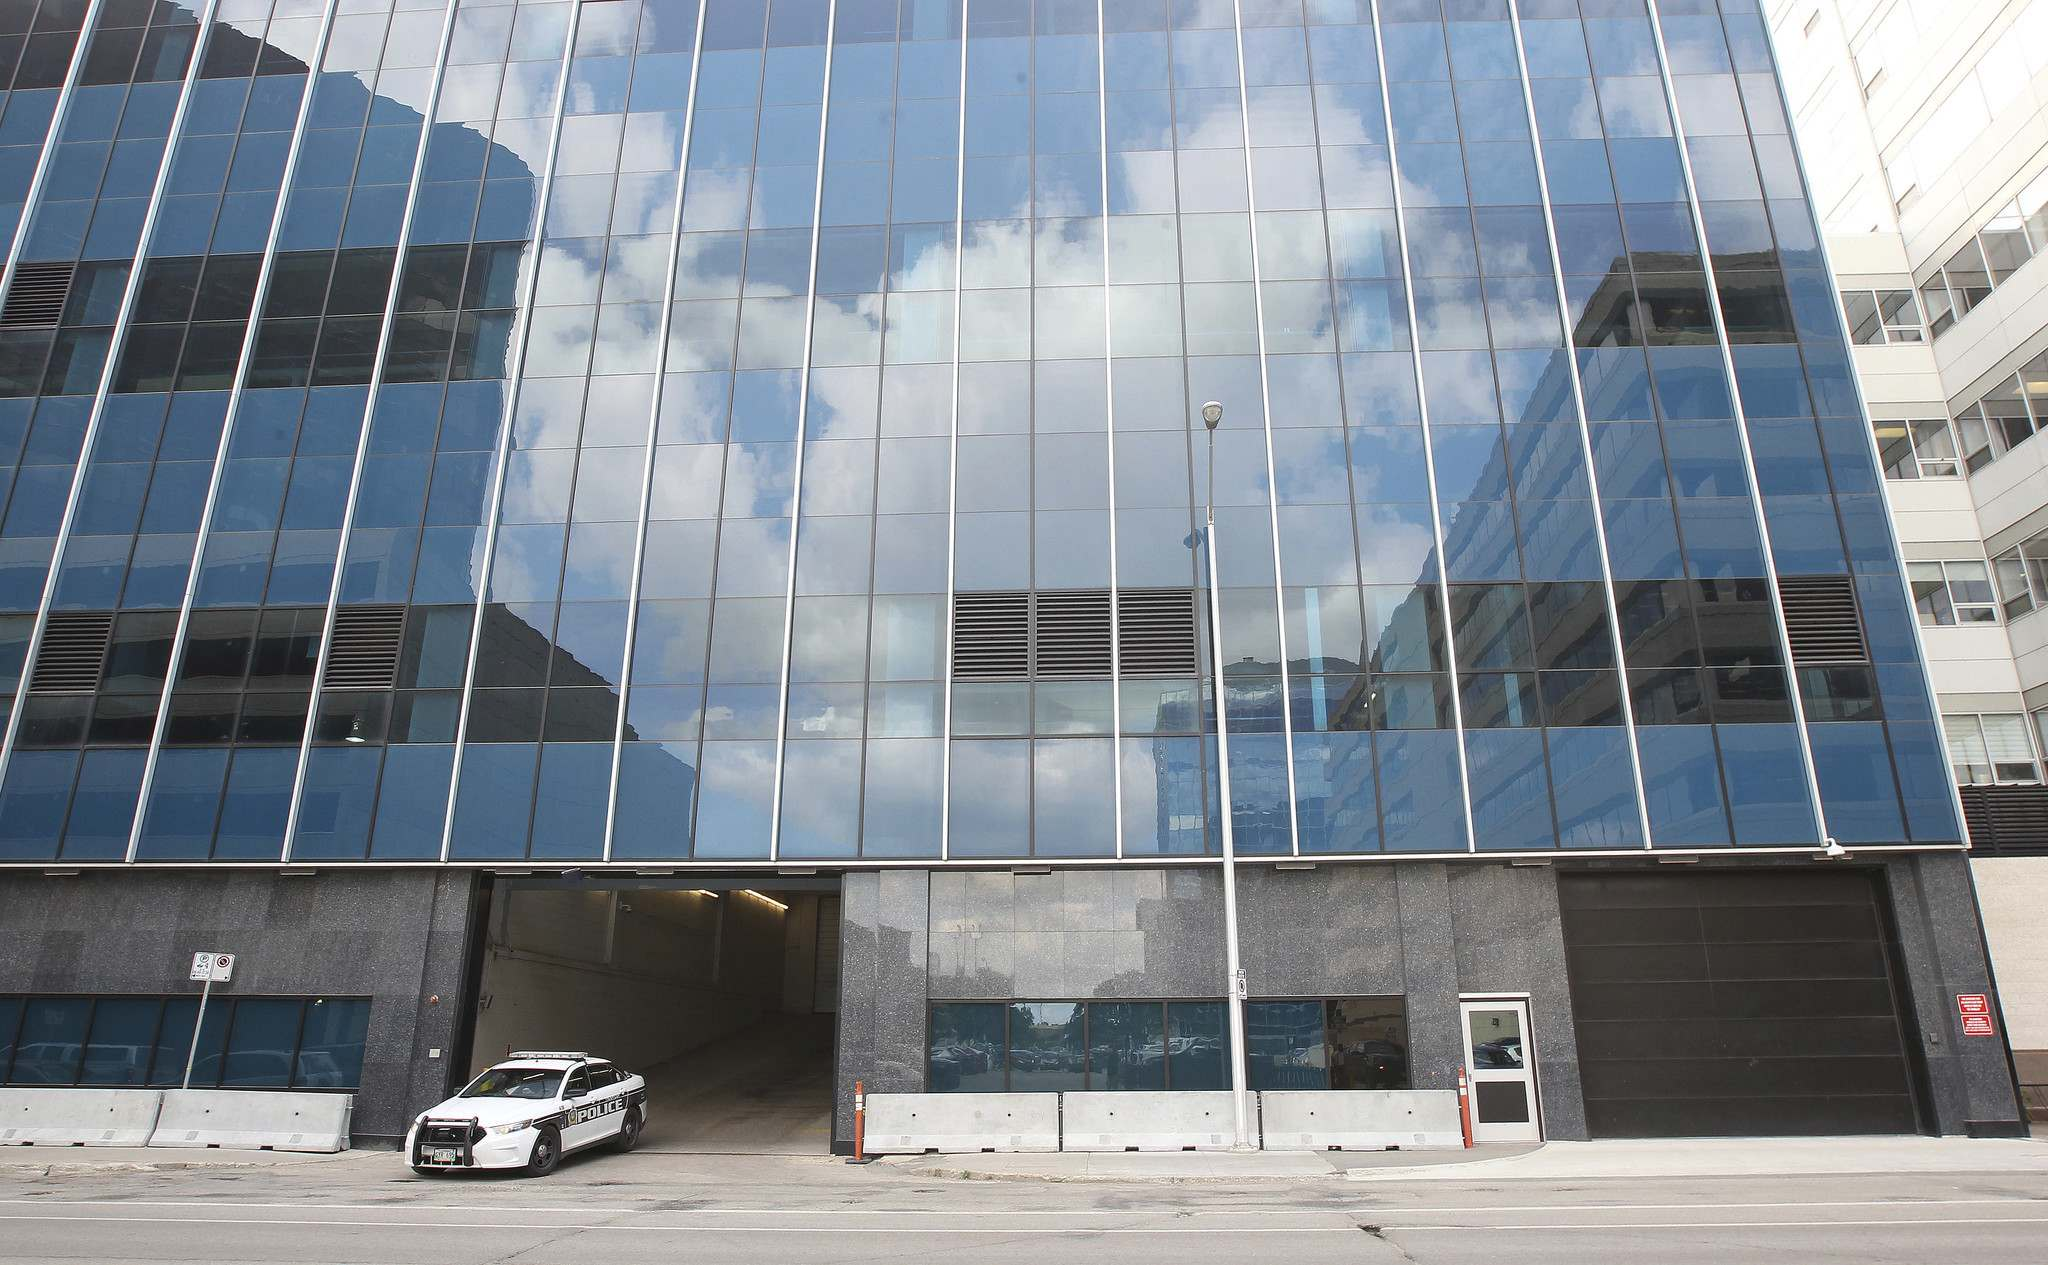 JOE BRYKSA / WINNIPEG FREE PRESS</p><p>Michael Kalo believes the police force can safely disclose more than it has up to this point about the state of the investigation into the Winnipeg police headquarters.</p>